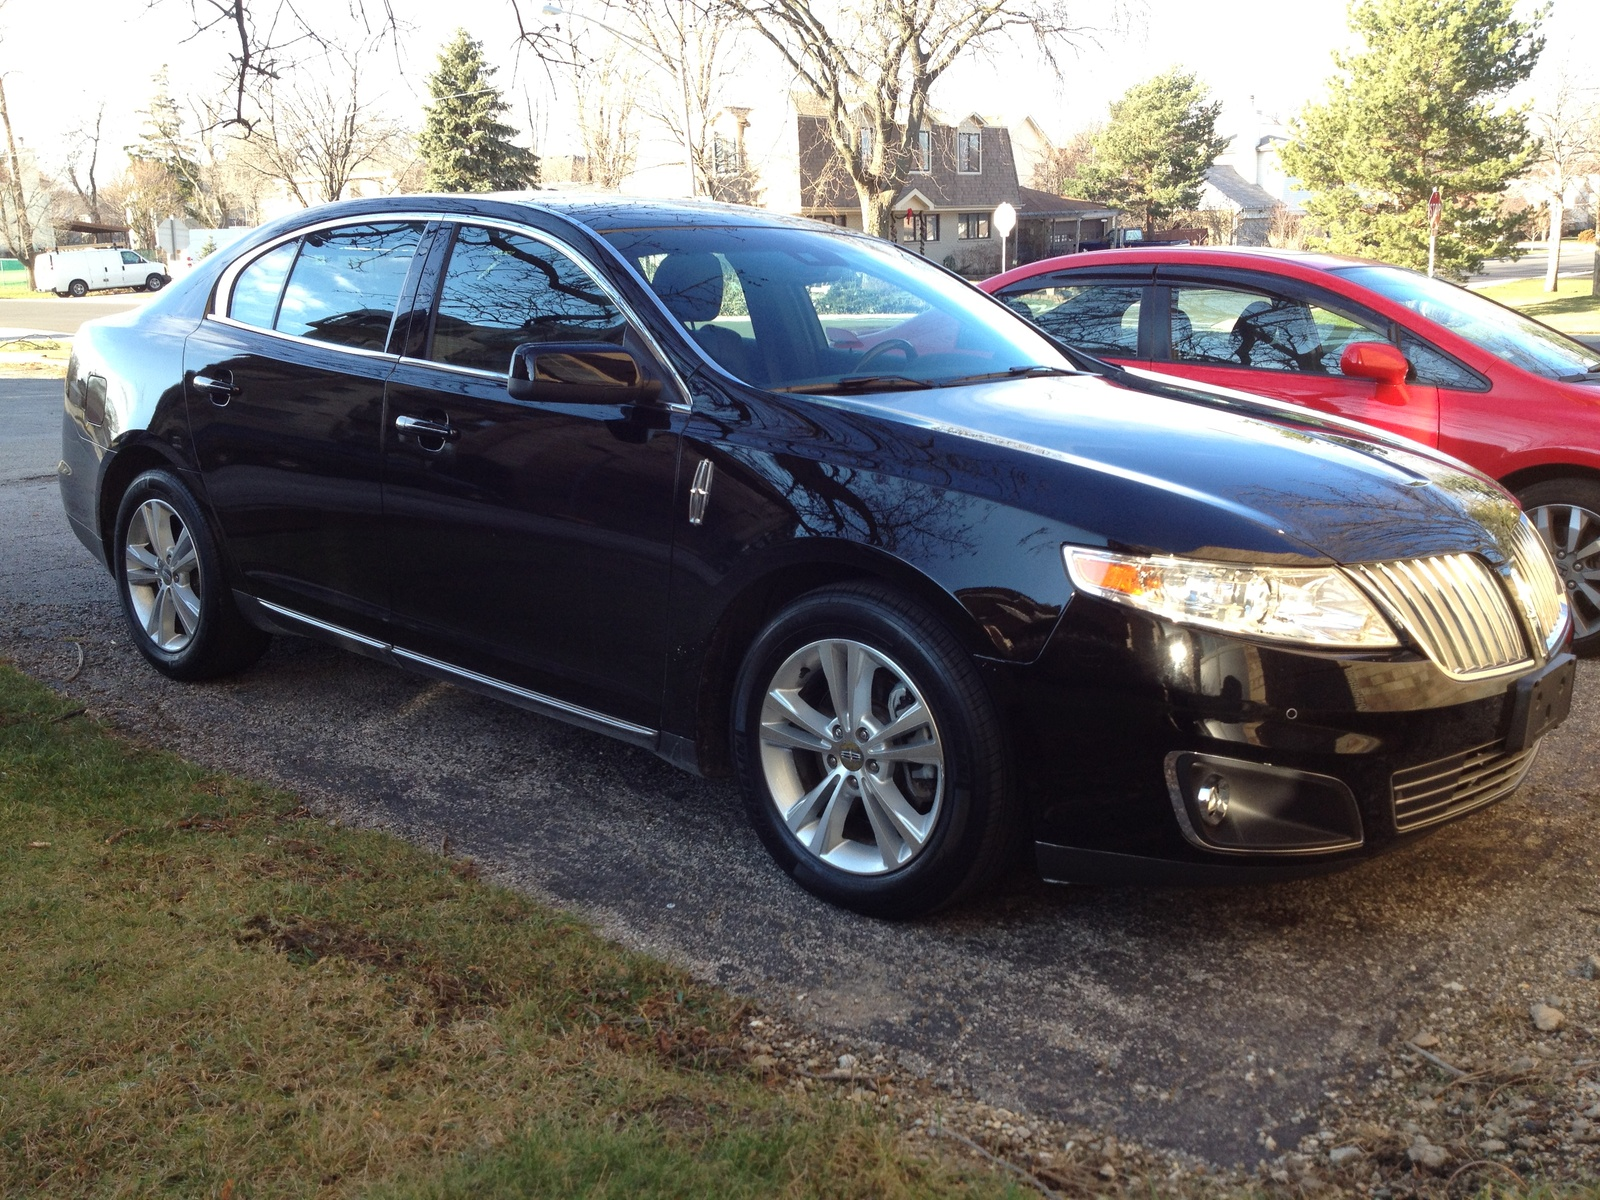 used lincoln mks for sale chicago il page 2 cargurus. Black Bedroom Furniture Sets. Home Design Ideas